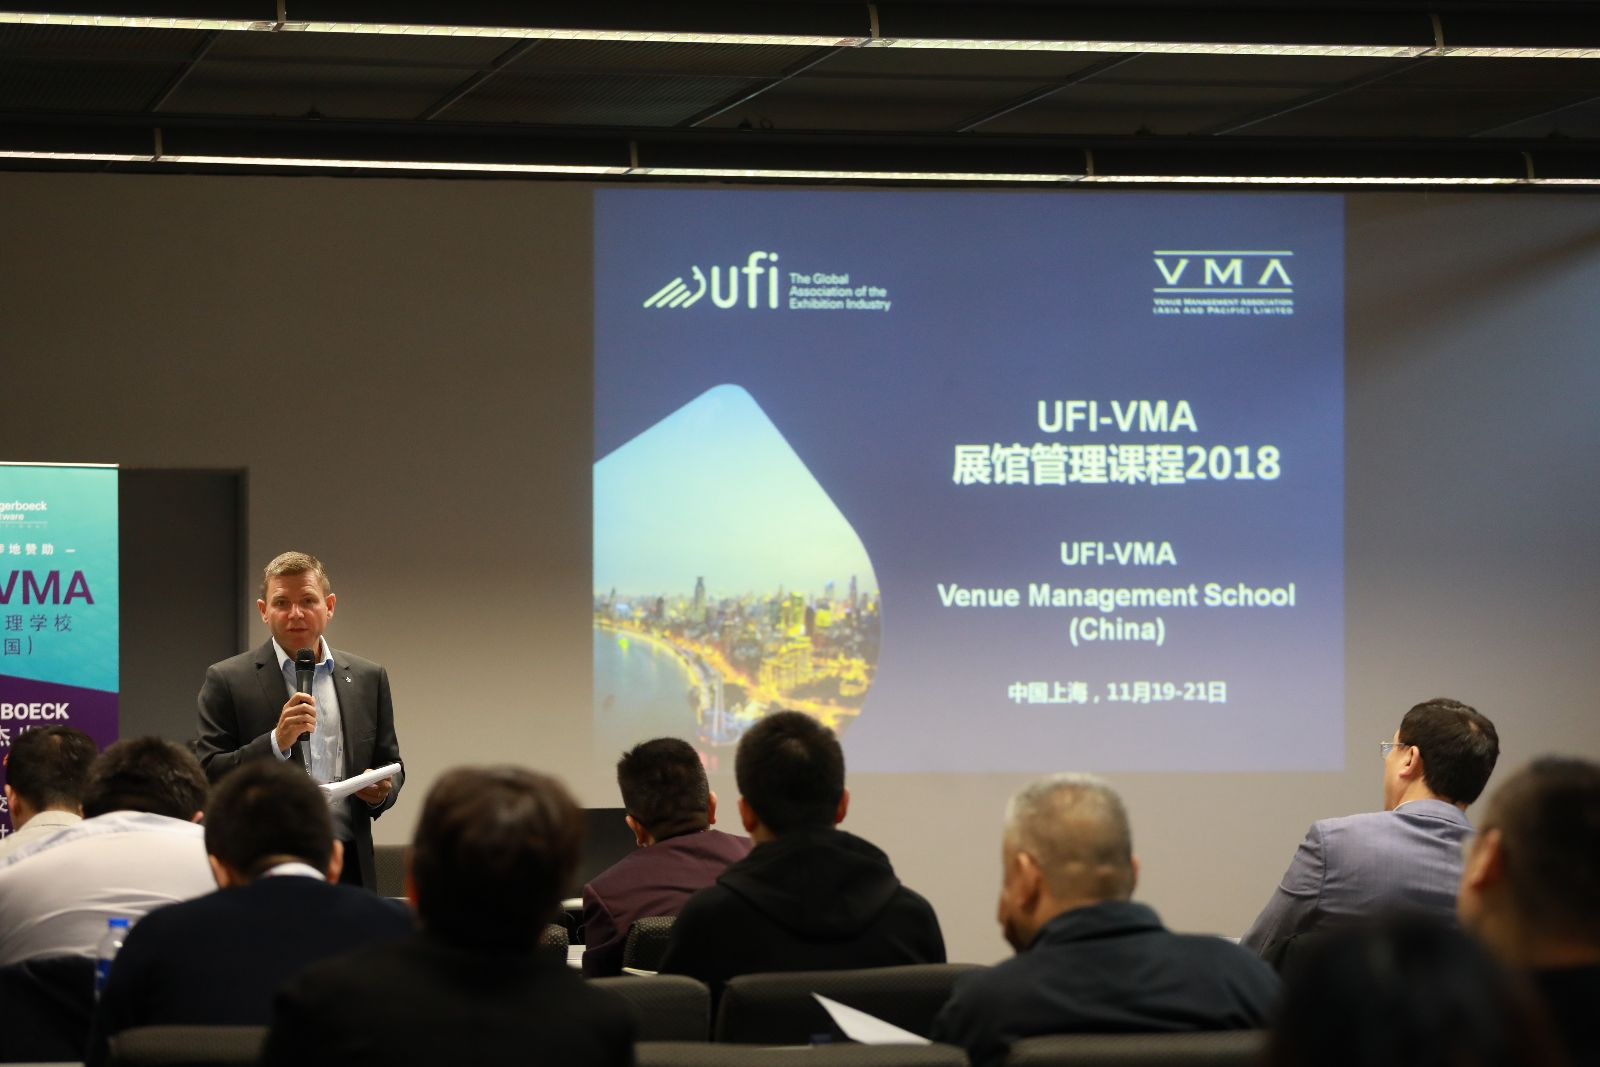 UFI-VMA Venue Management School (China) – UFI The Global